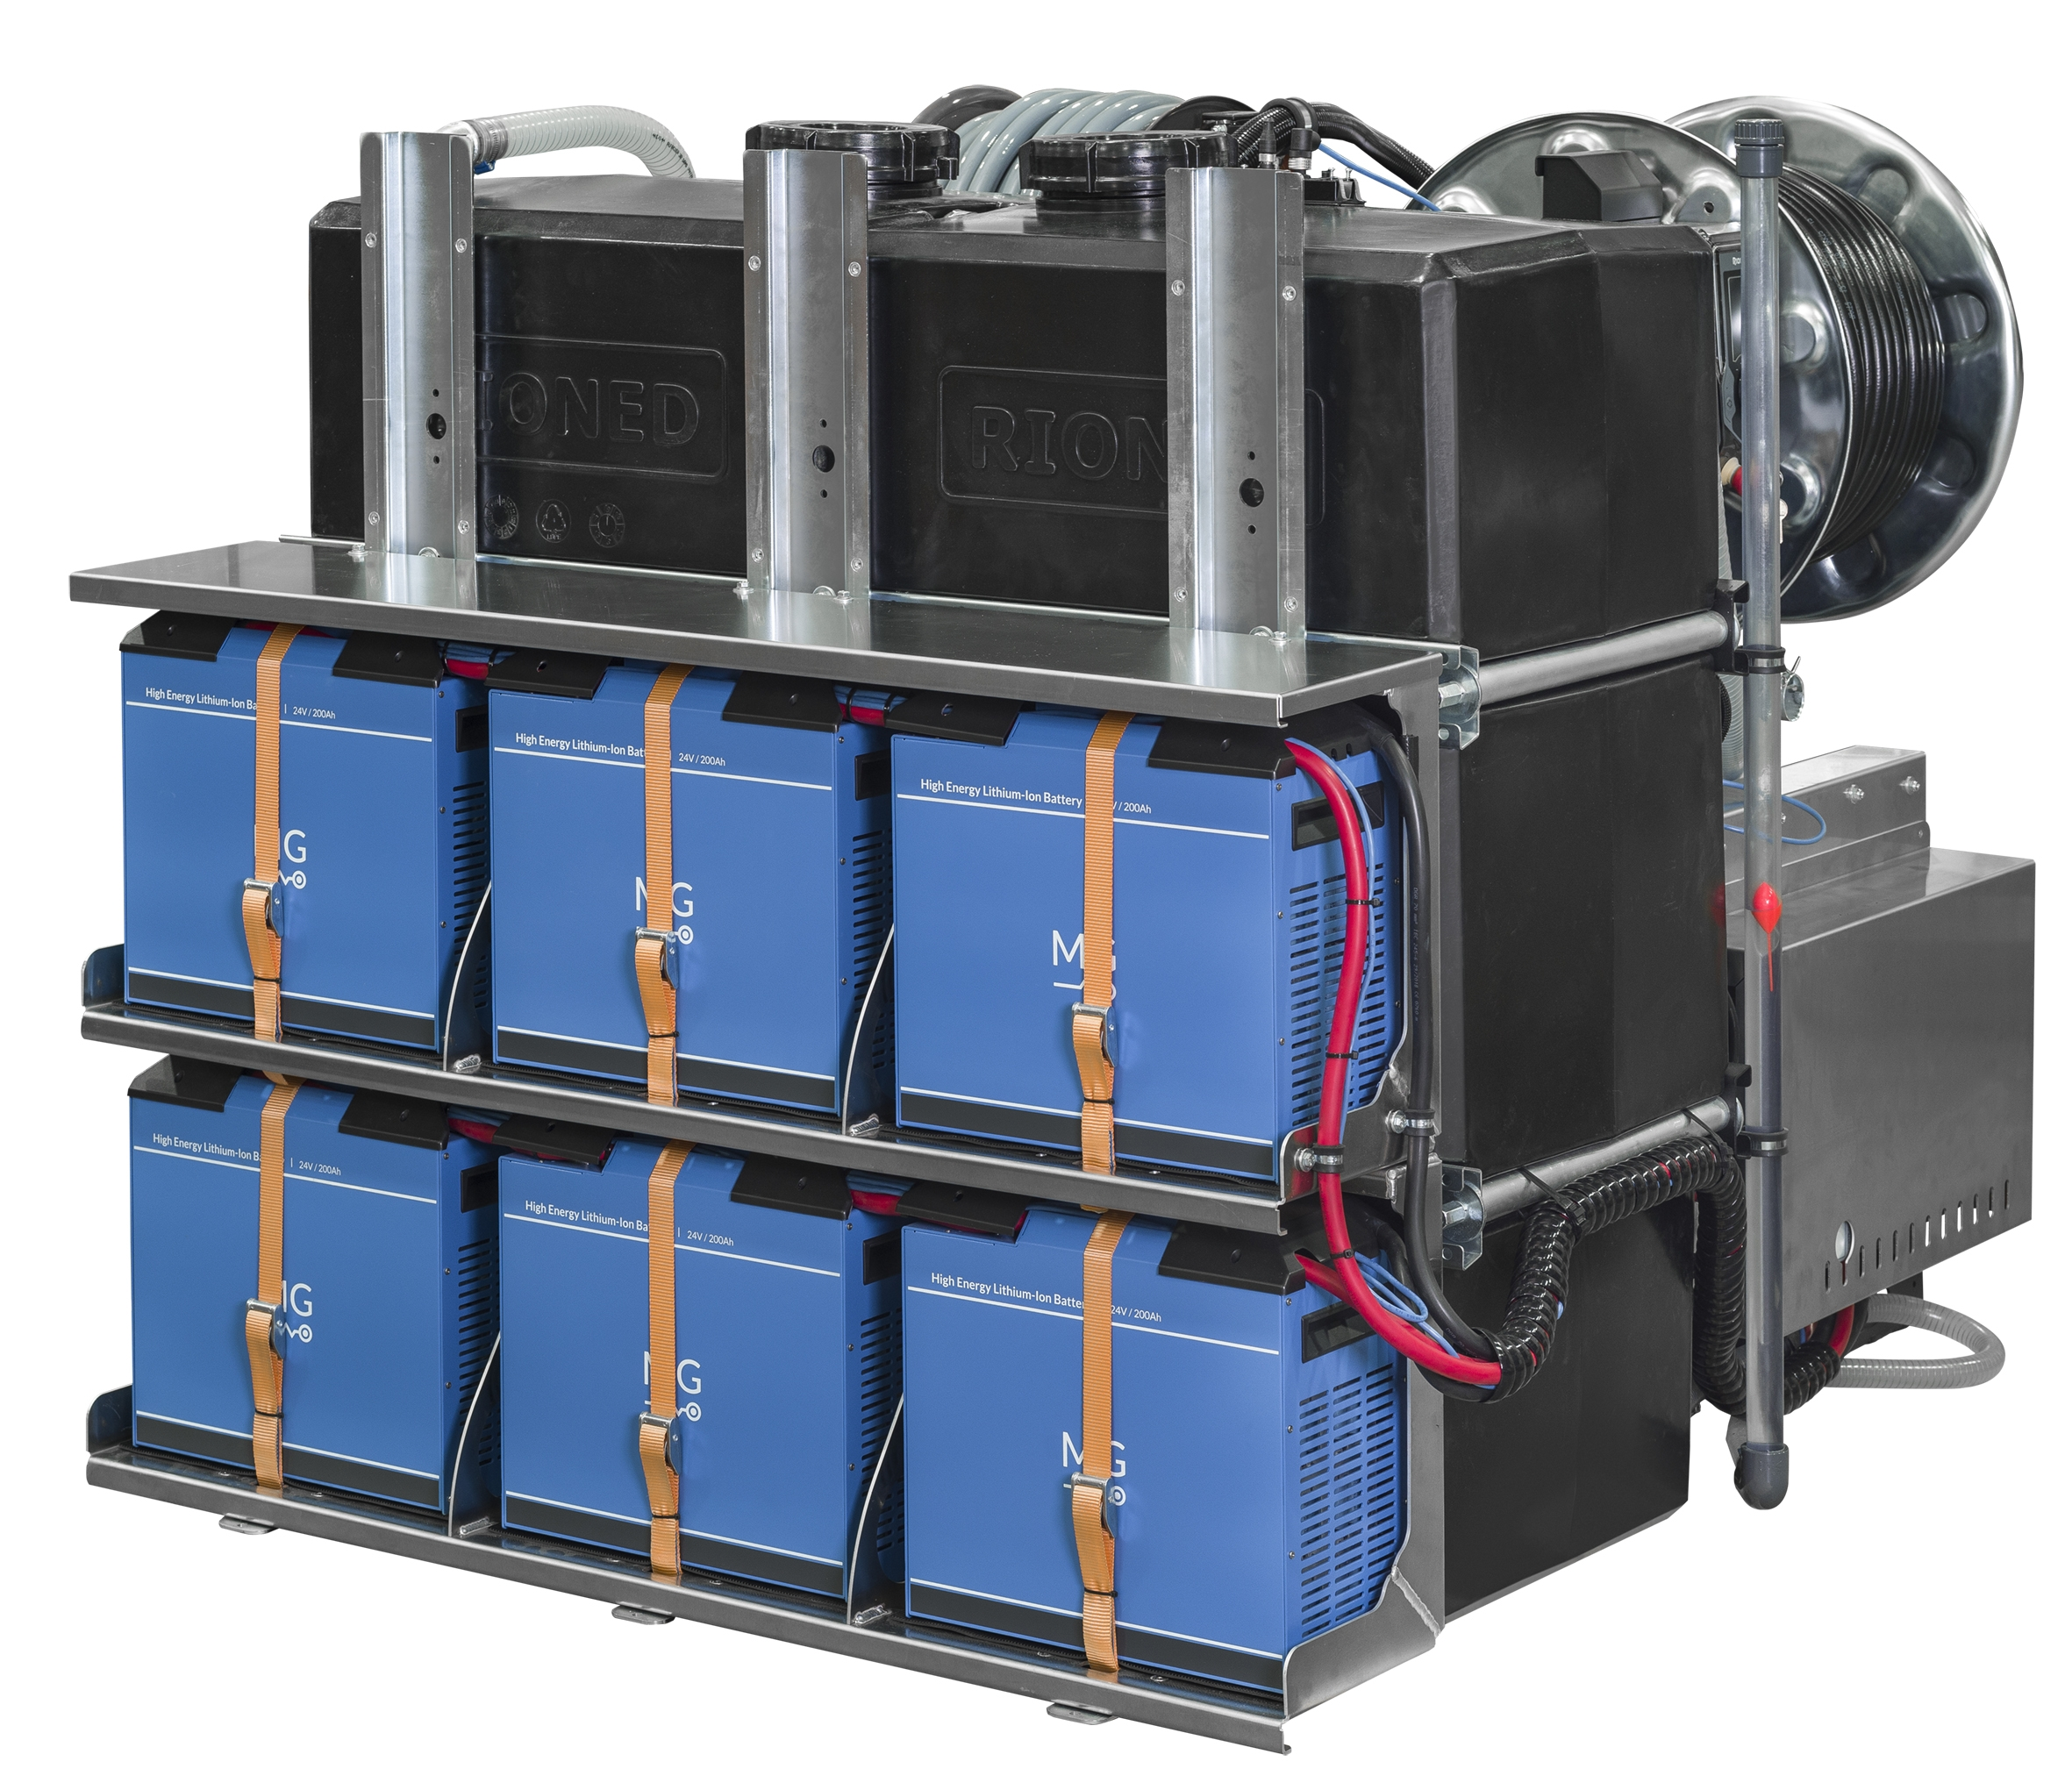 Powered by an array of six high-density li-ion batteries mounted on a rack-system.